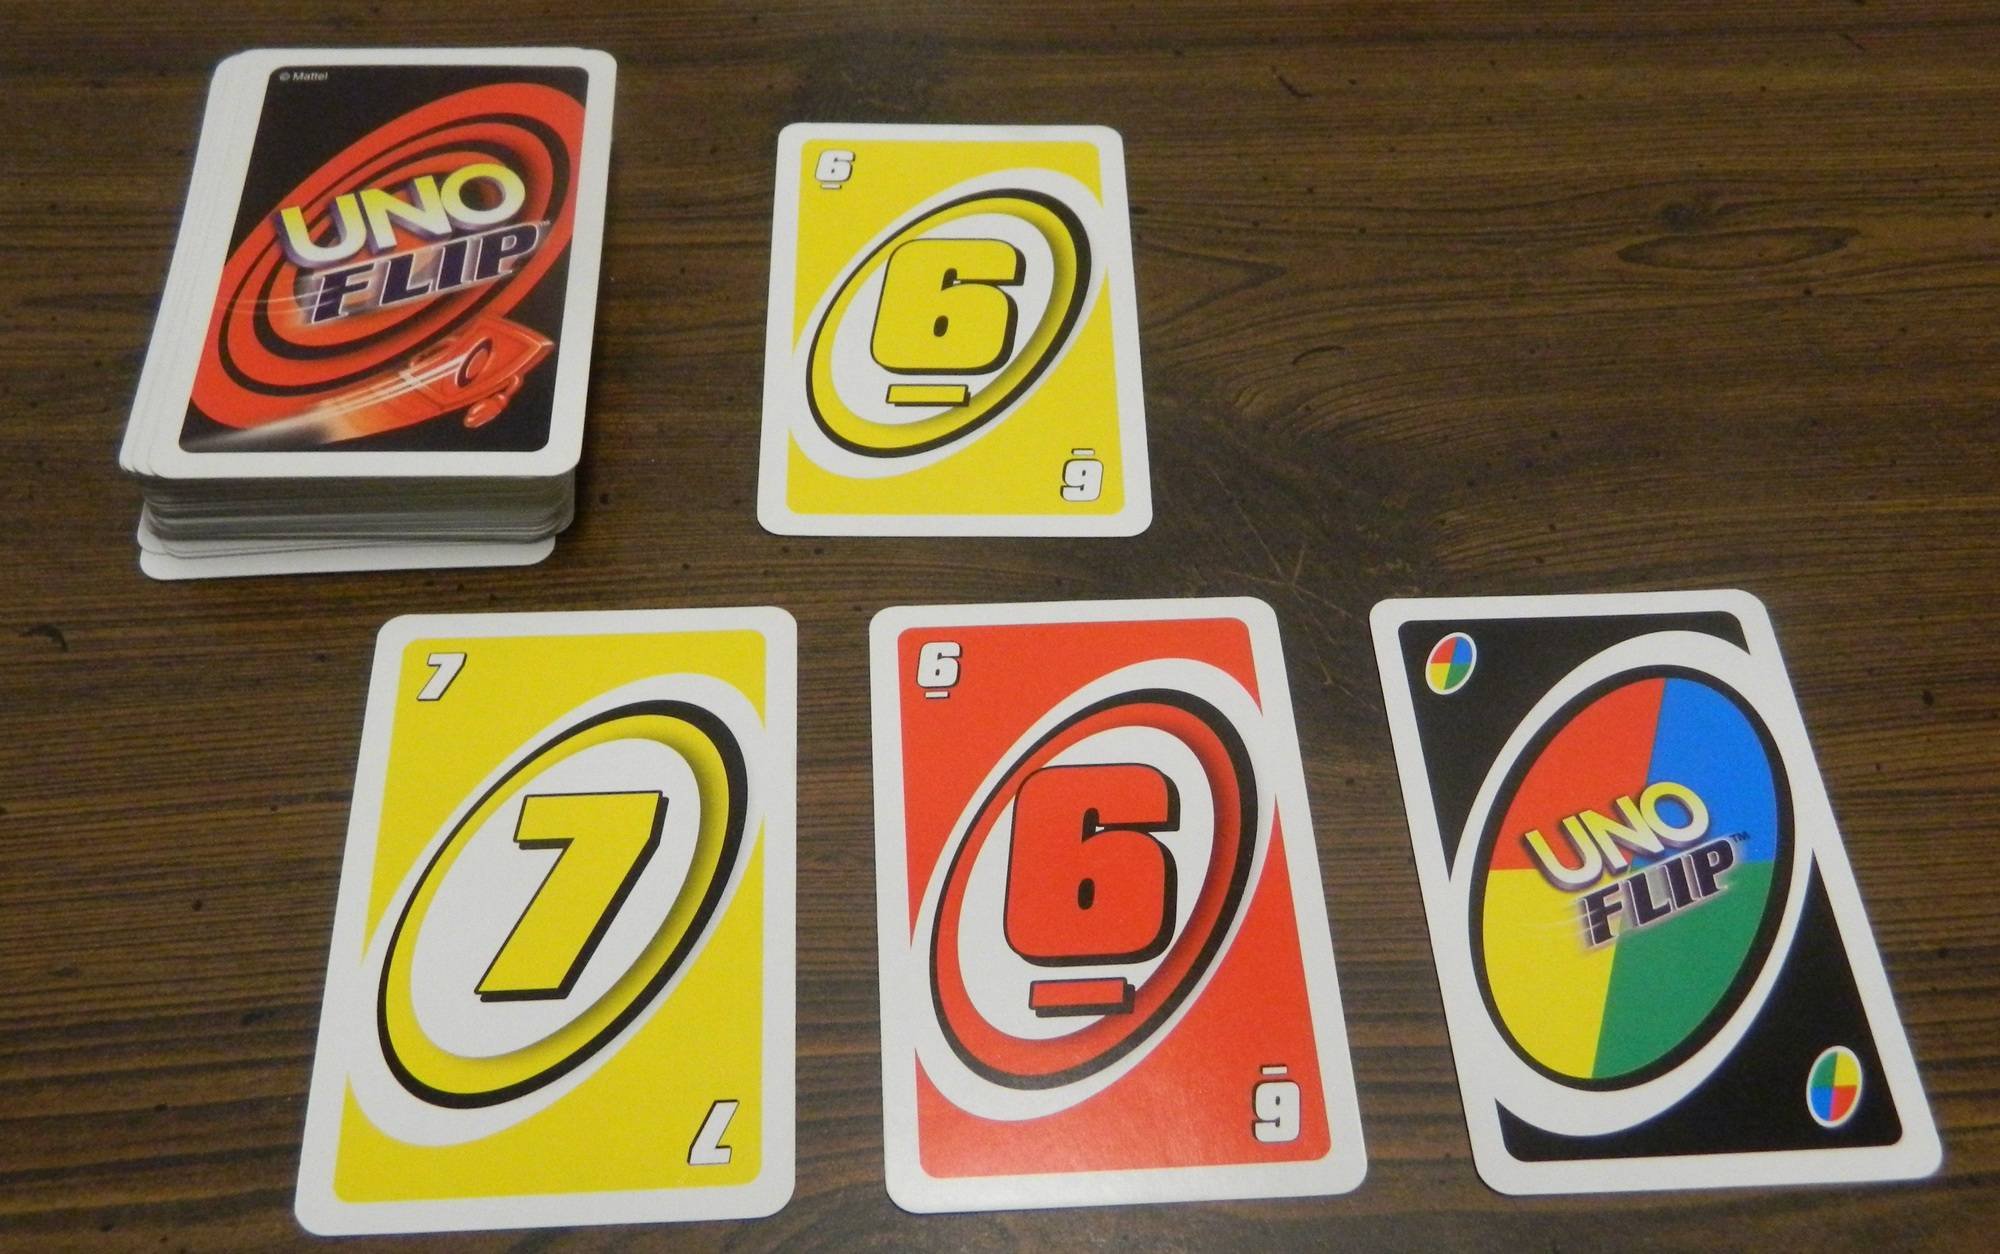 UNO Flip Card Game Review and Rules | Geeky Hobbies